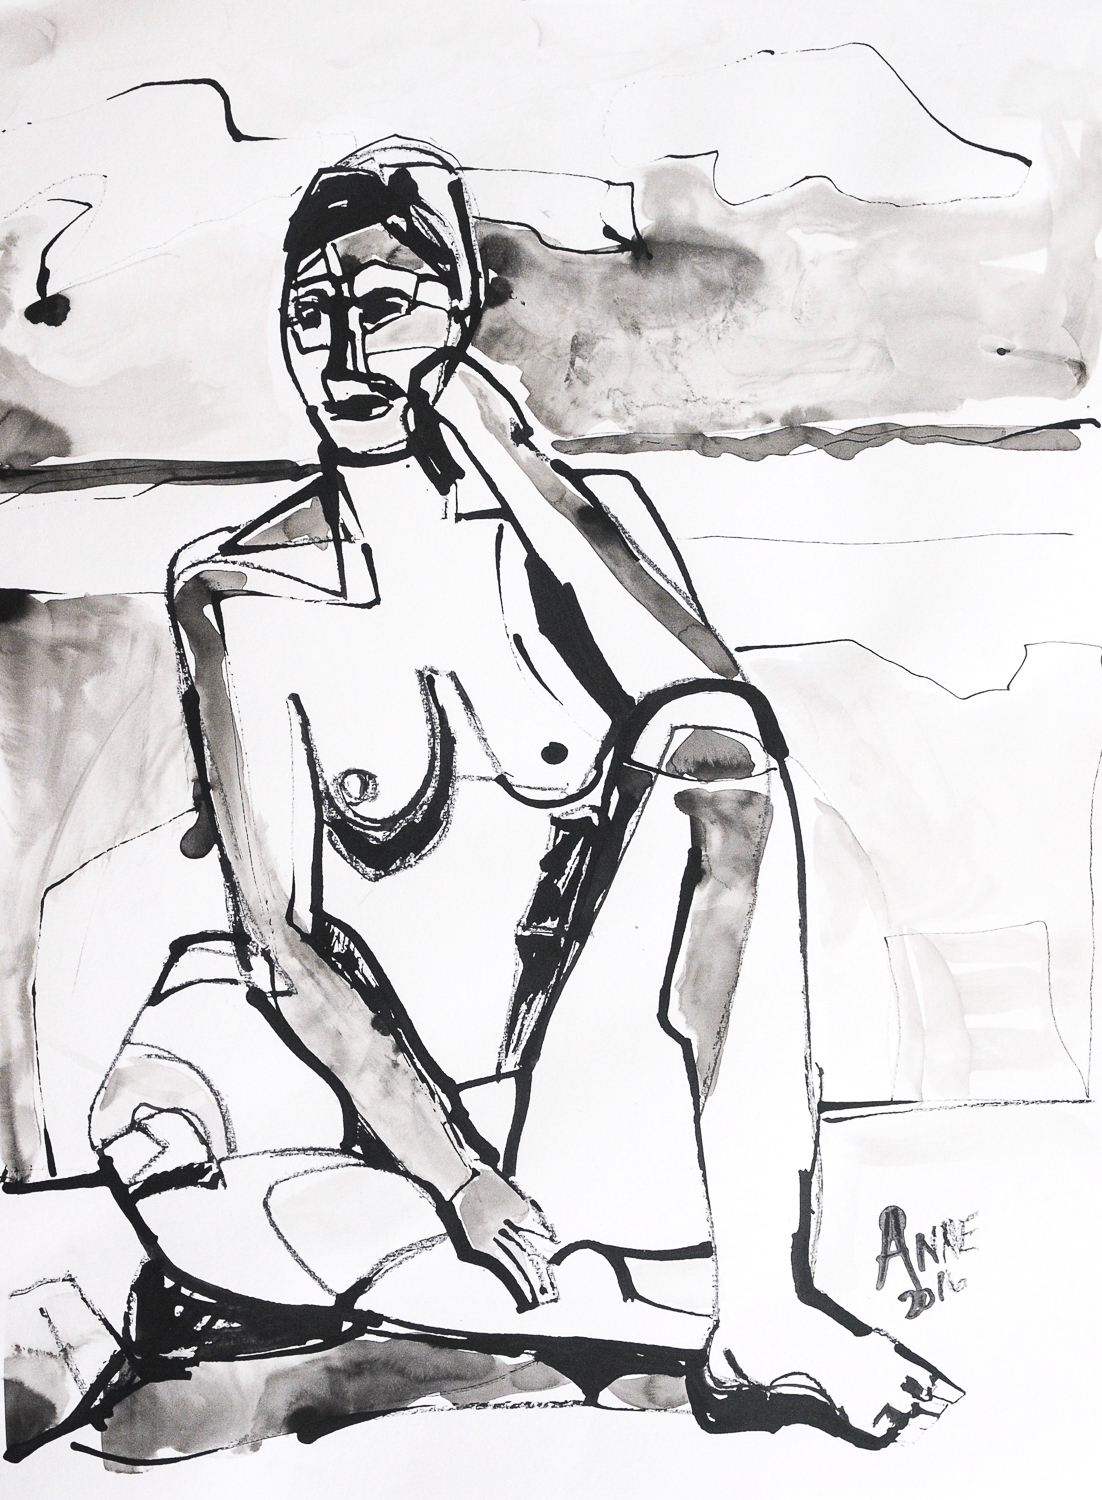 Seated Figure in Ink | Ink on Paper | 18x24""